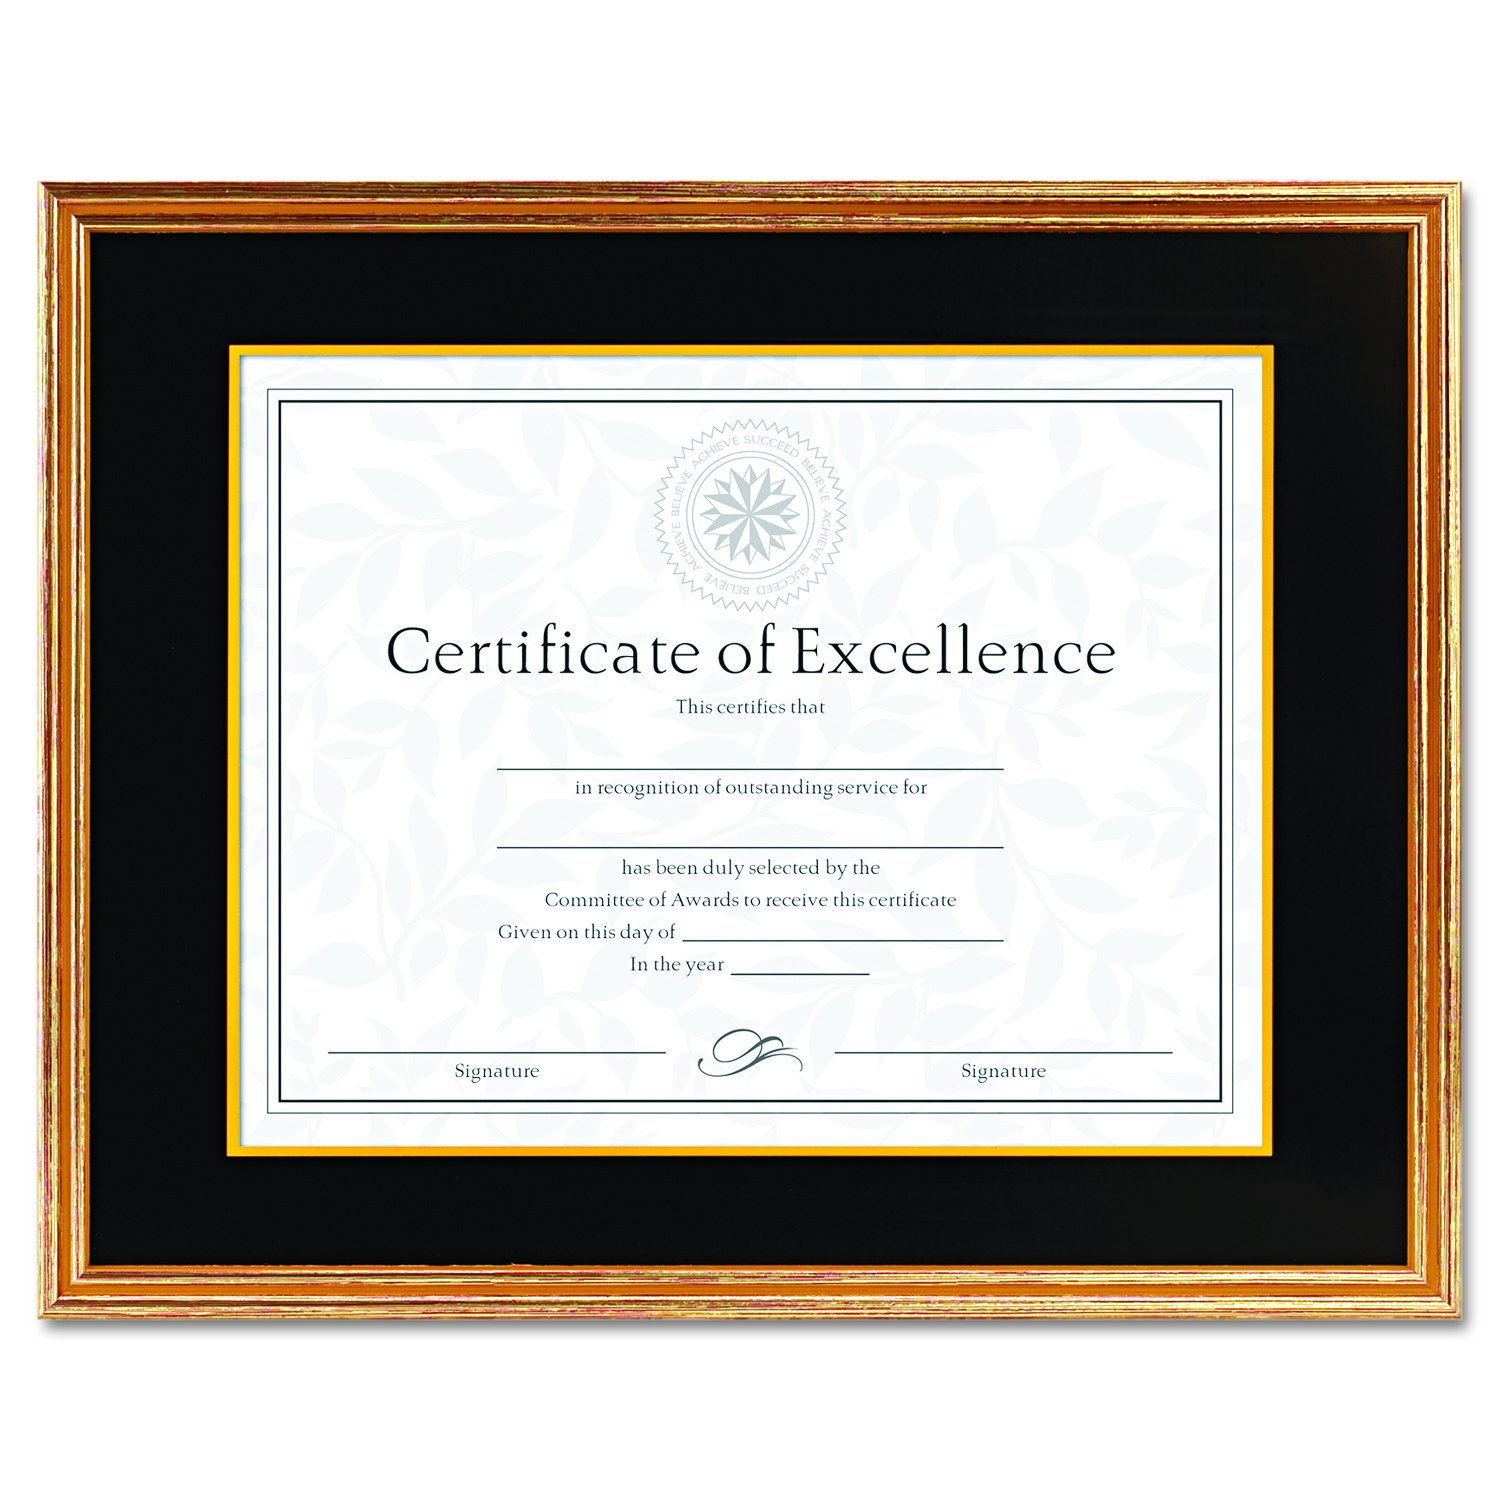 DAX Hardwood Document/Certificate Frame with Mat, 11 x 14 Inches, Antiqued Gold Leaf (1511T)